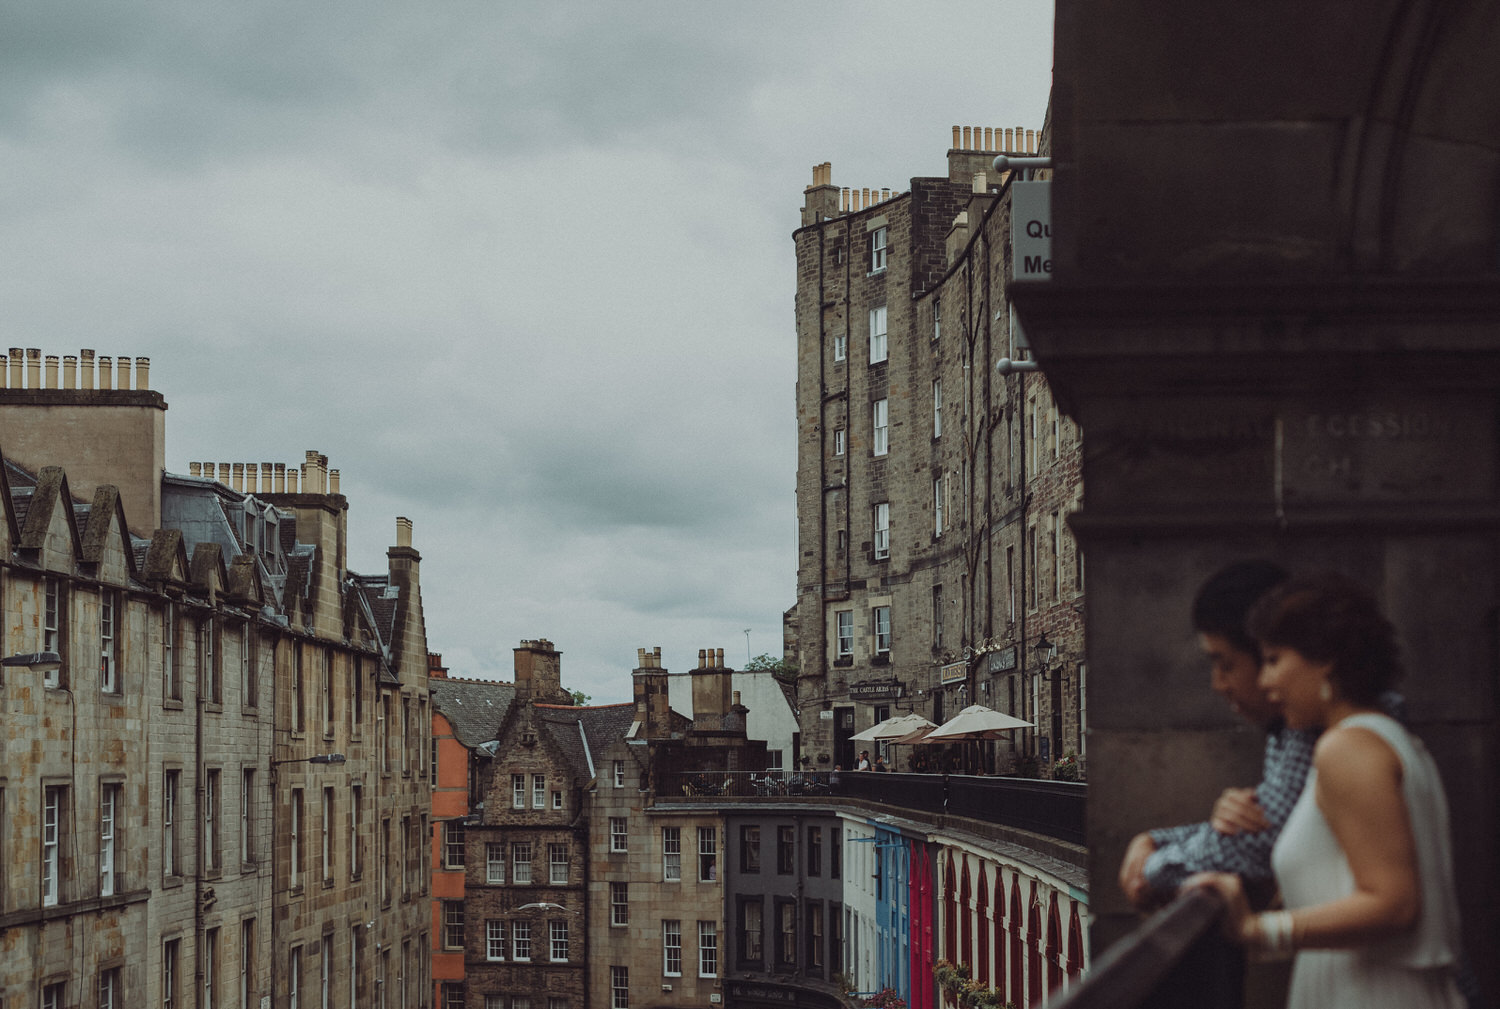 Hui Ying & Lionel's Edinburgh engagement shoot